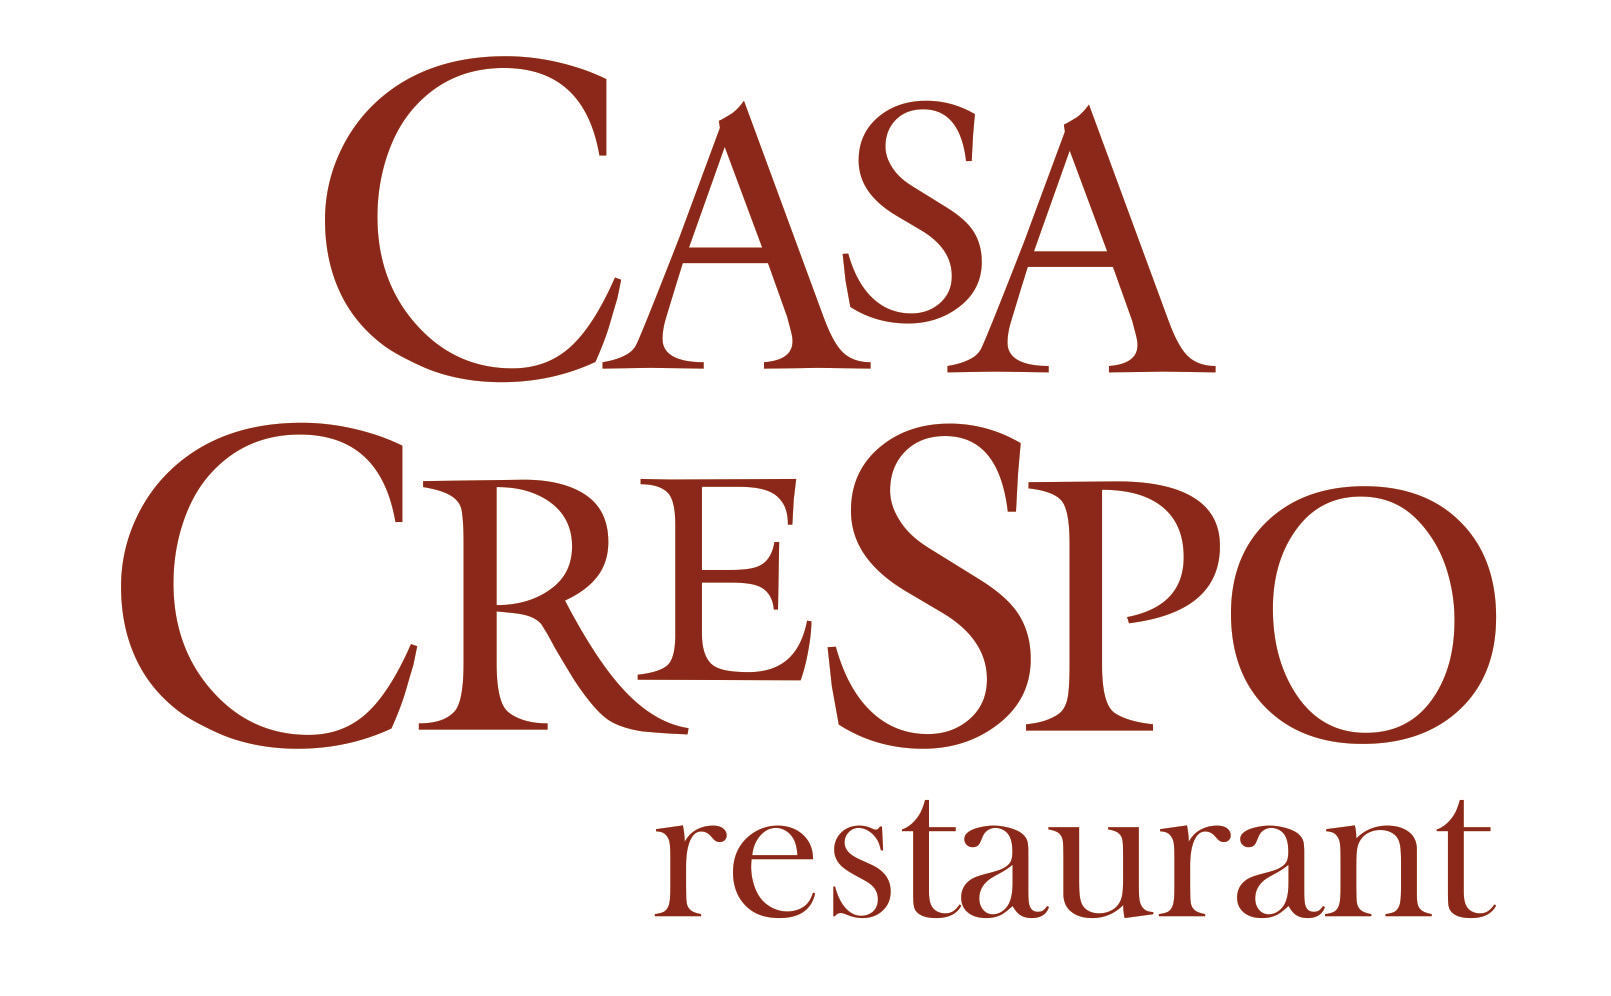 Casa Crespo Cooking School logo